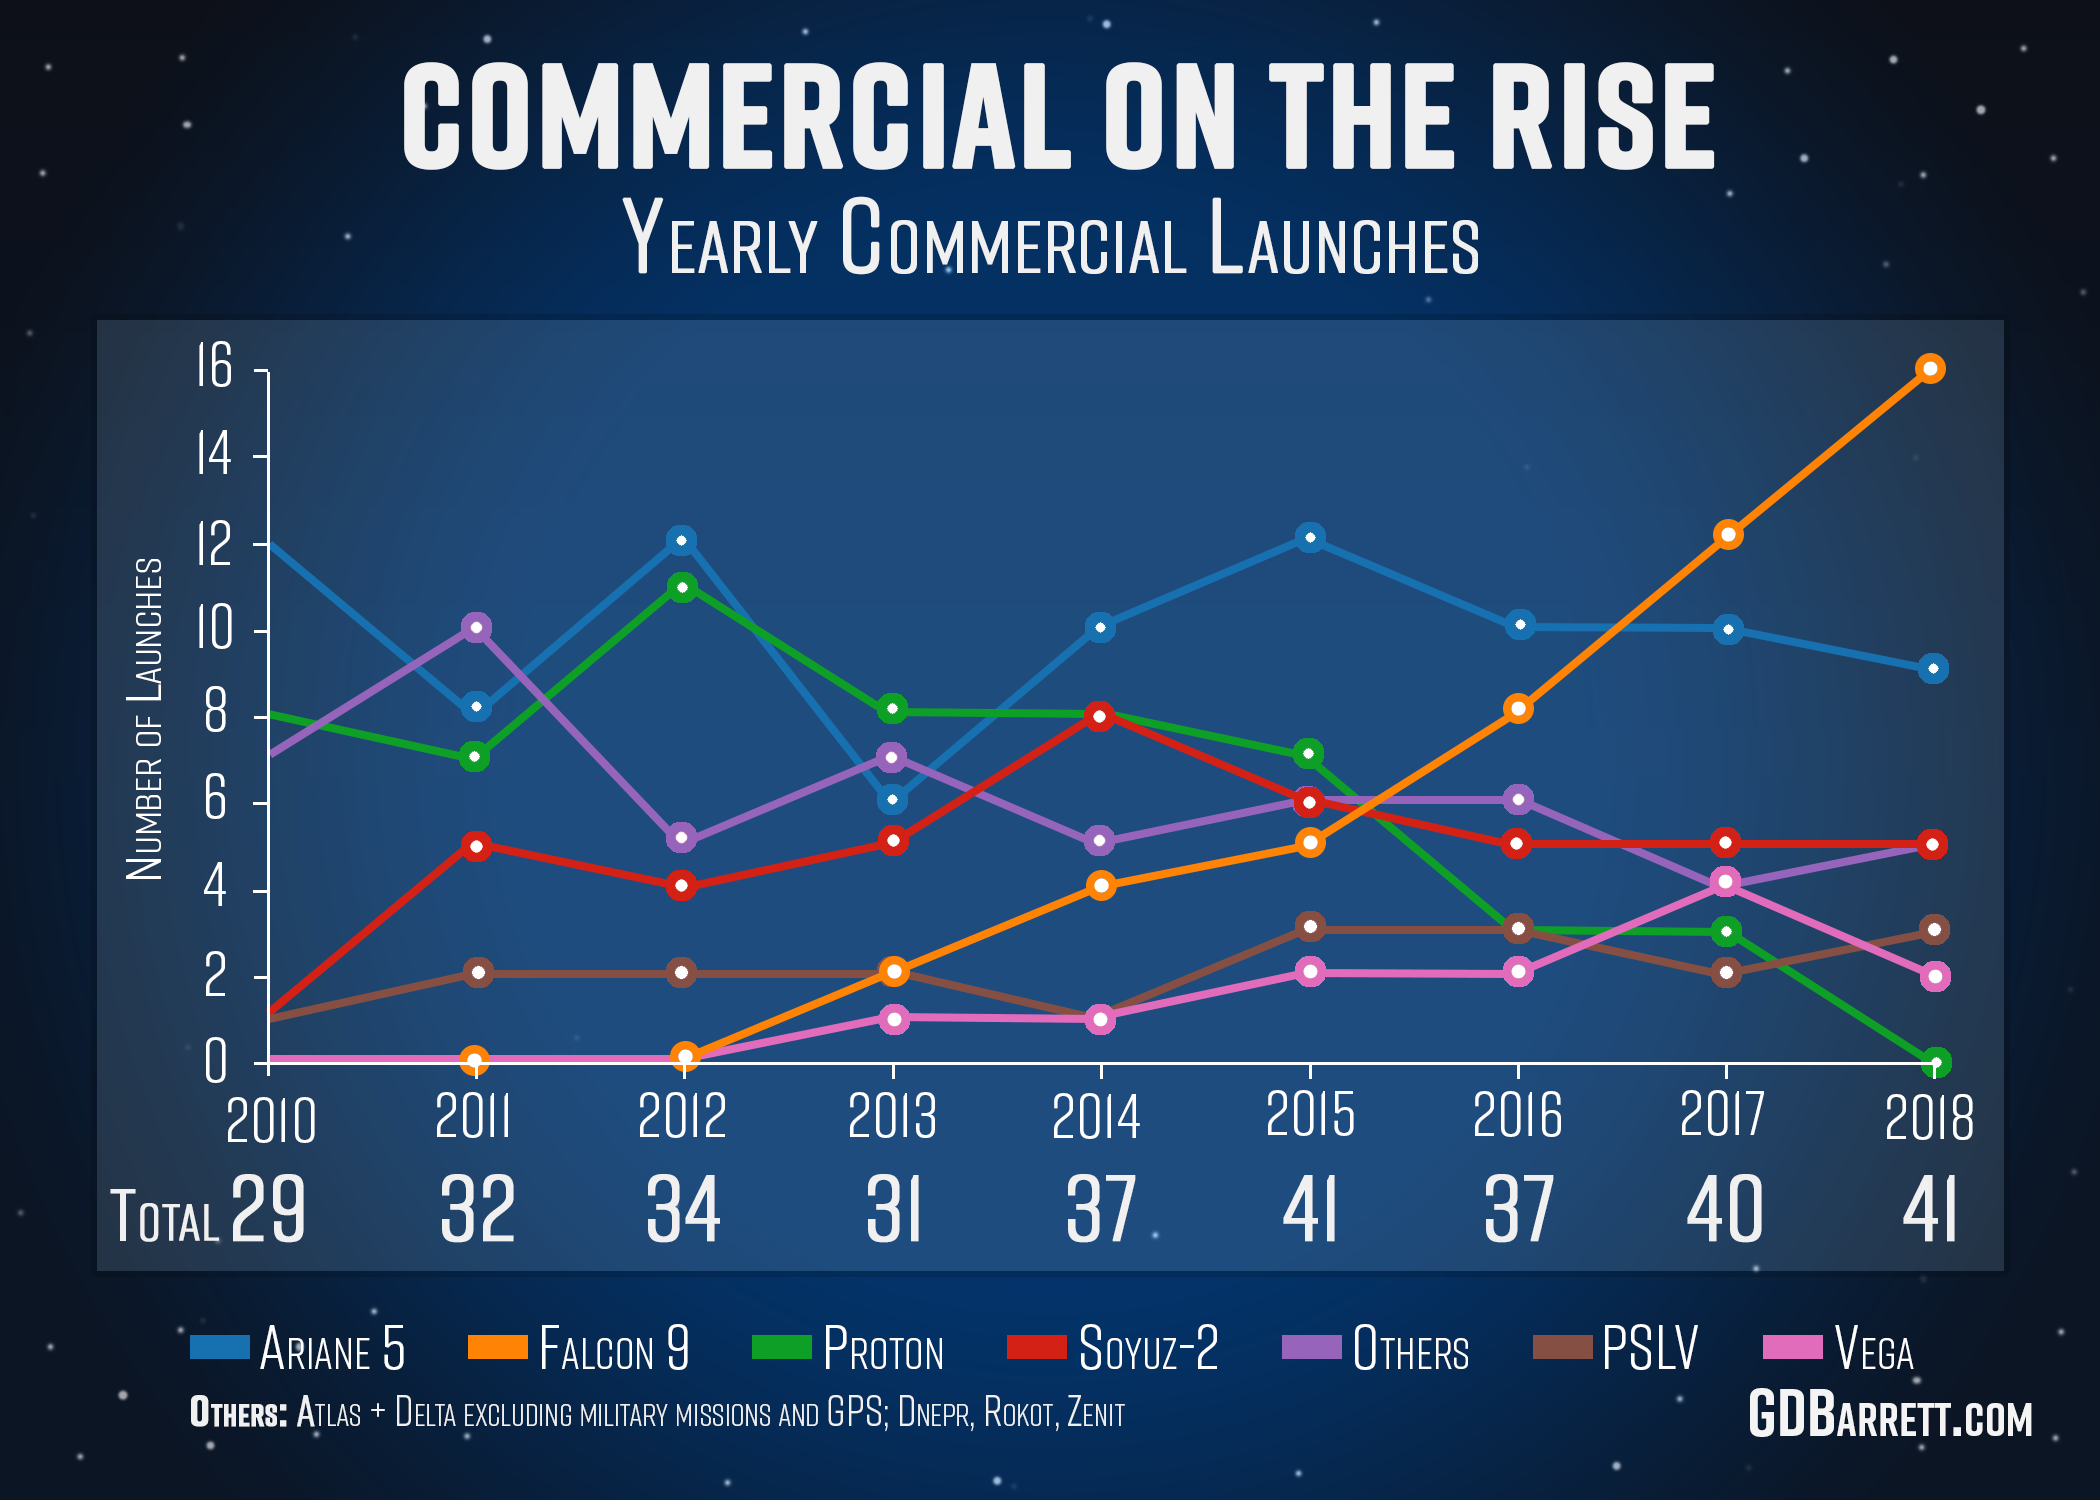 Commercial Launches Per Year